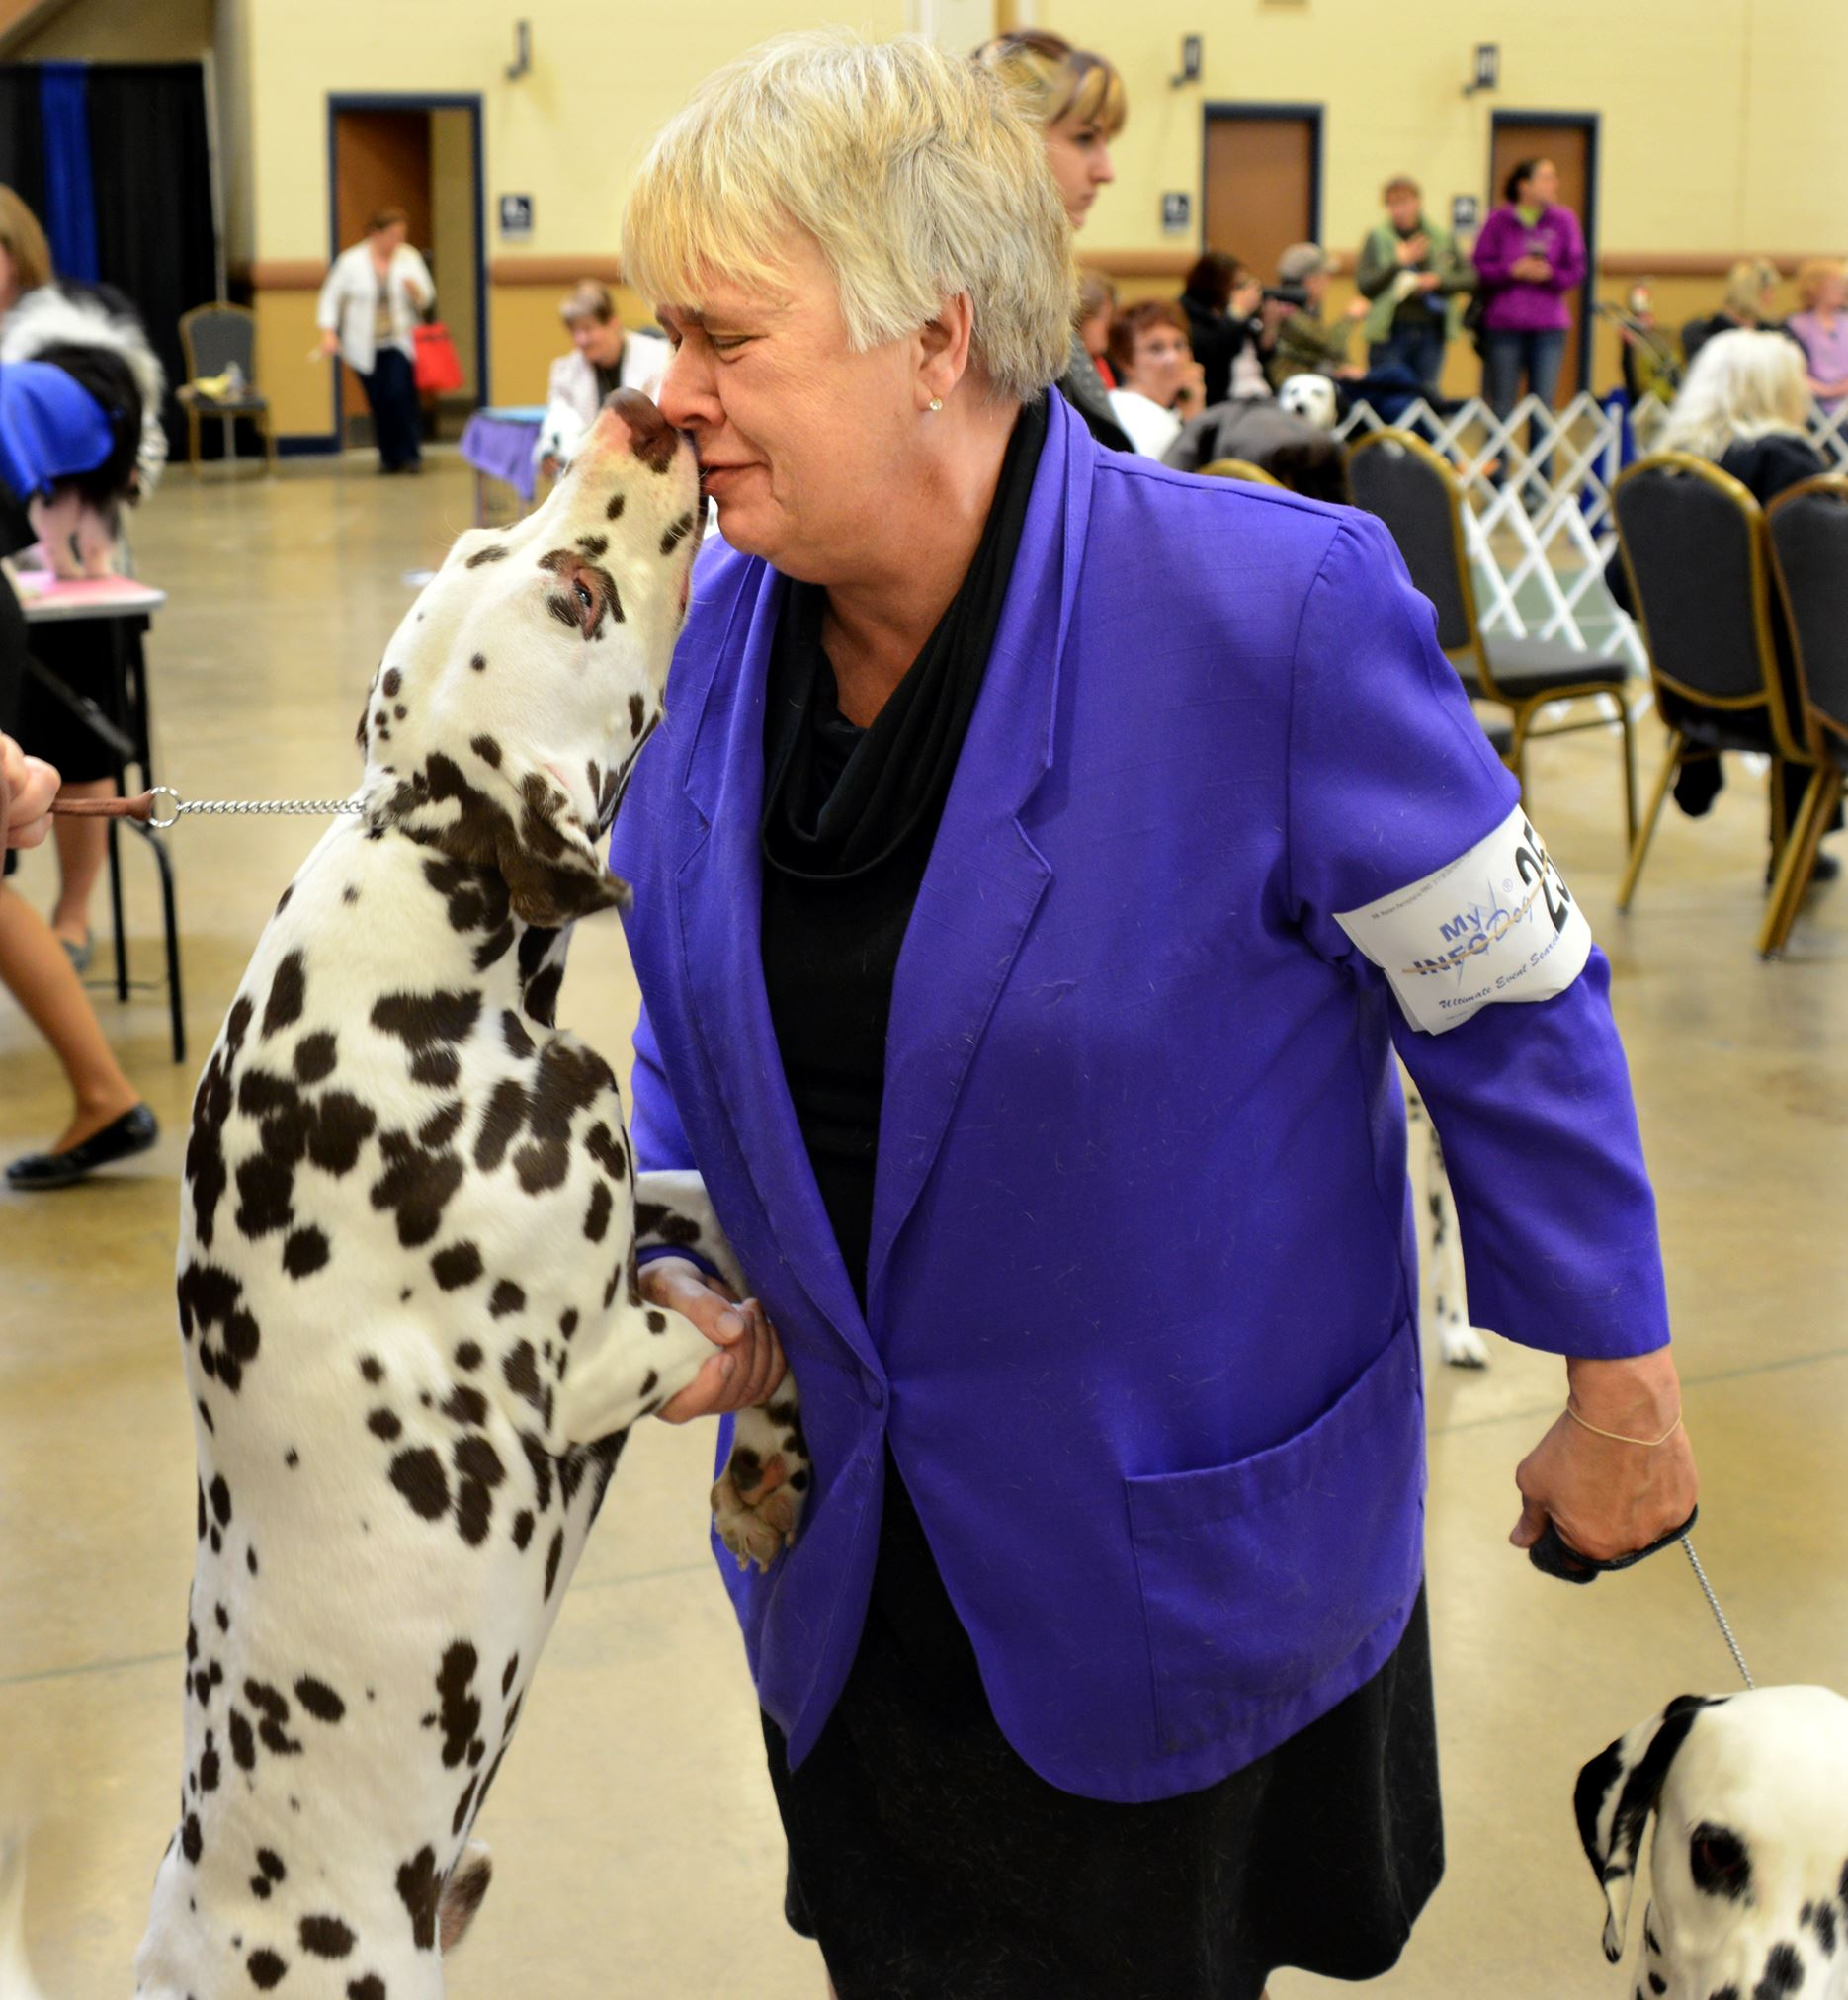 201445RARlocaldog3-11 Cindy Riggans of Canton, Ohio, gets kisses from her former puppy Lindsey as she waits to show her dog George during the Western Pennsylvania Kennel Association dog show at the Monroeville Convention Center. Ms. Riggans bred Lindsey and used to show him.